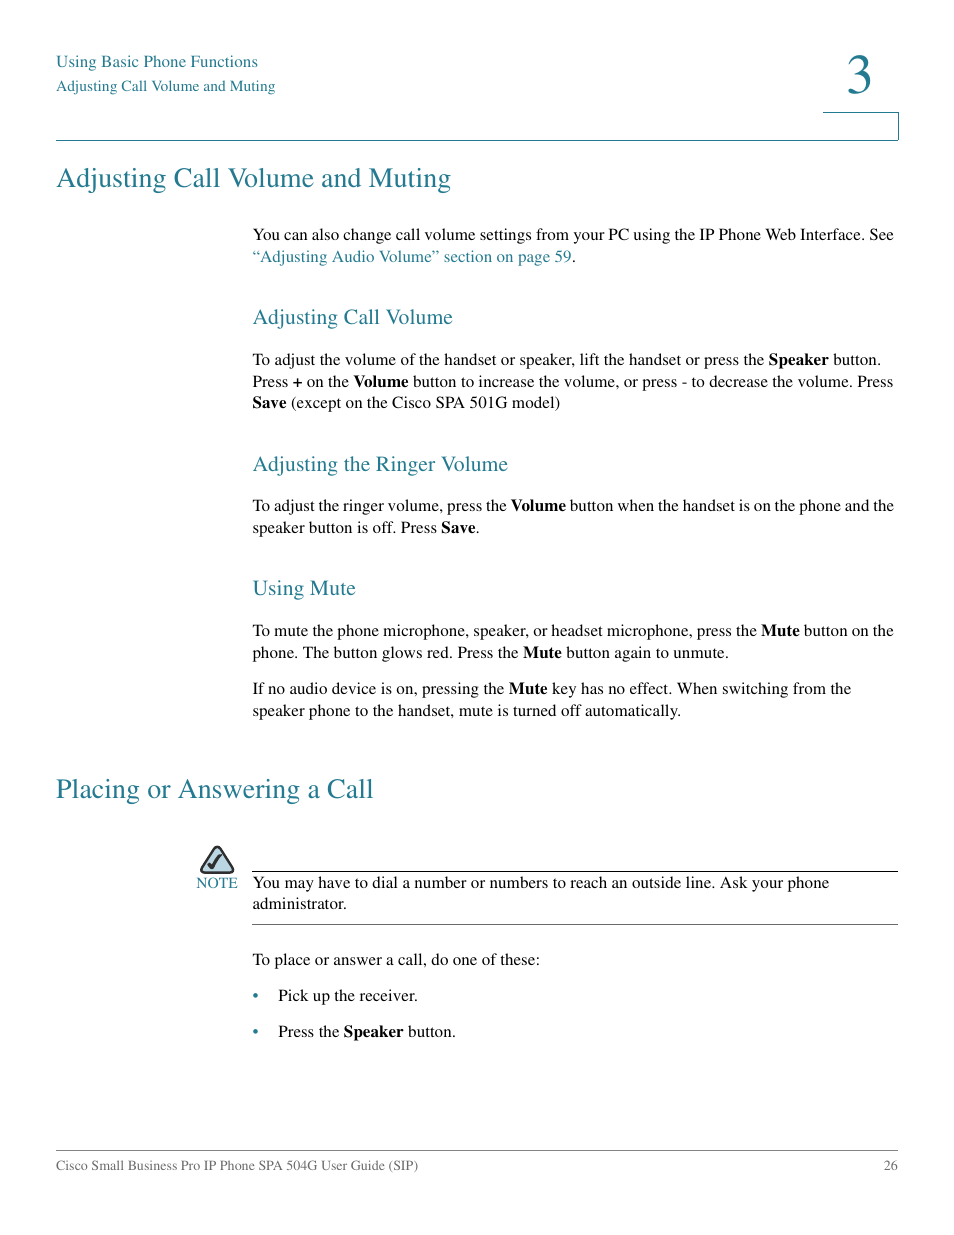 User guide. Cisco small business pro. Spa 504g ip phone for 8x8.